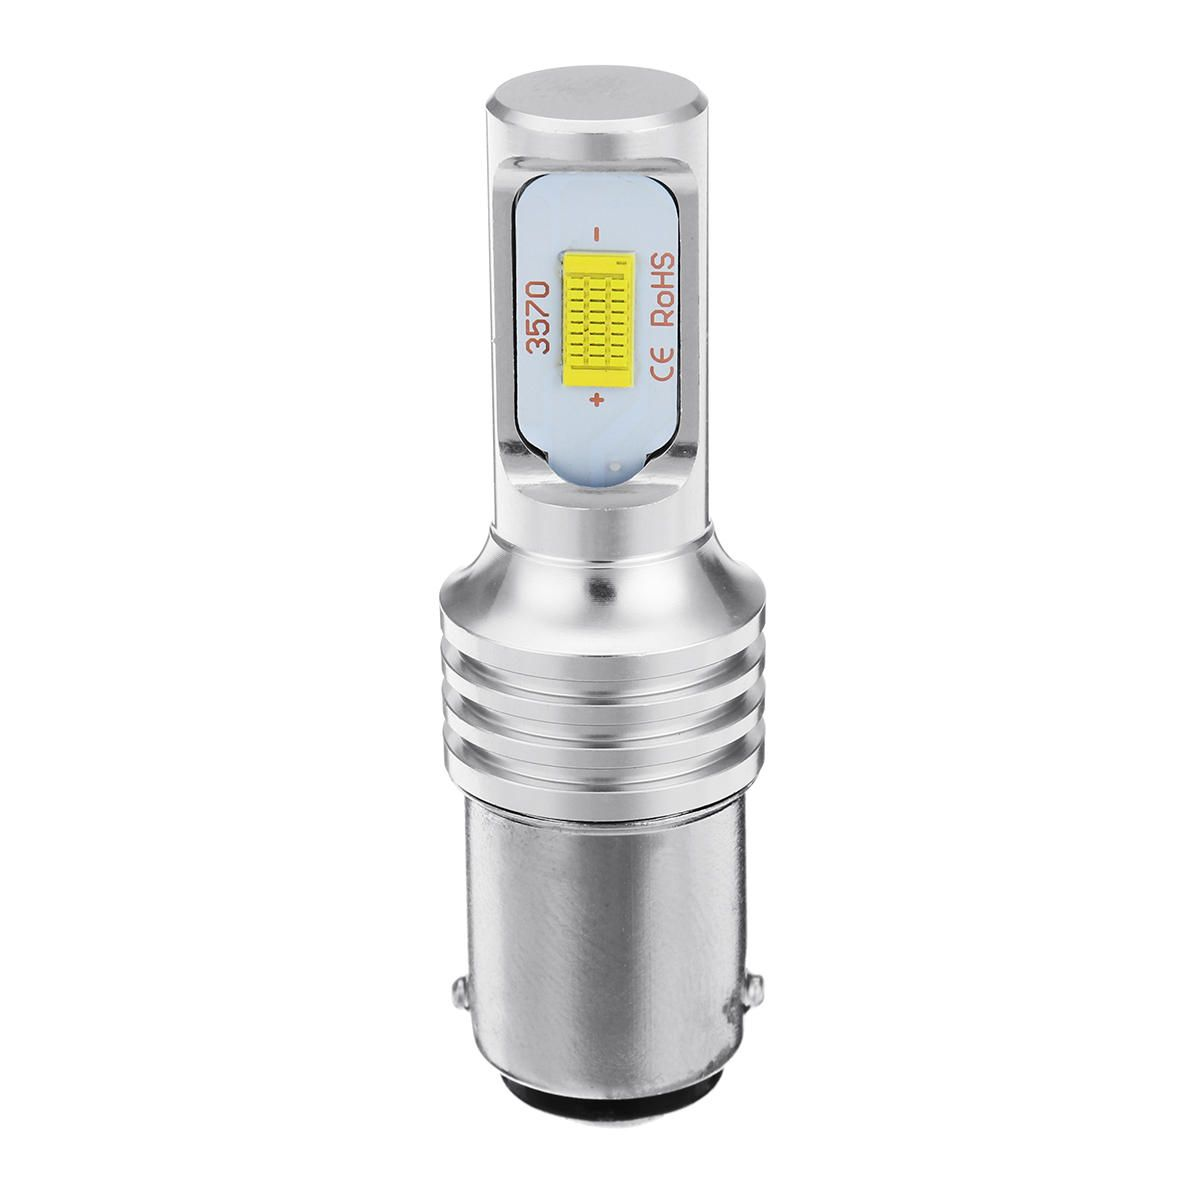 1157 Ba15d 180 3570 2led 72w 980lm Car Reversing Backup Lights Bulb Turn Signal Lamp White Car Lights From Automobiles Motorcycles On Banggood Com Bulb Light Bulb Lights